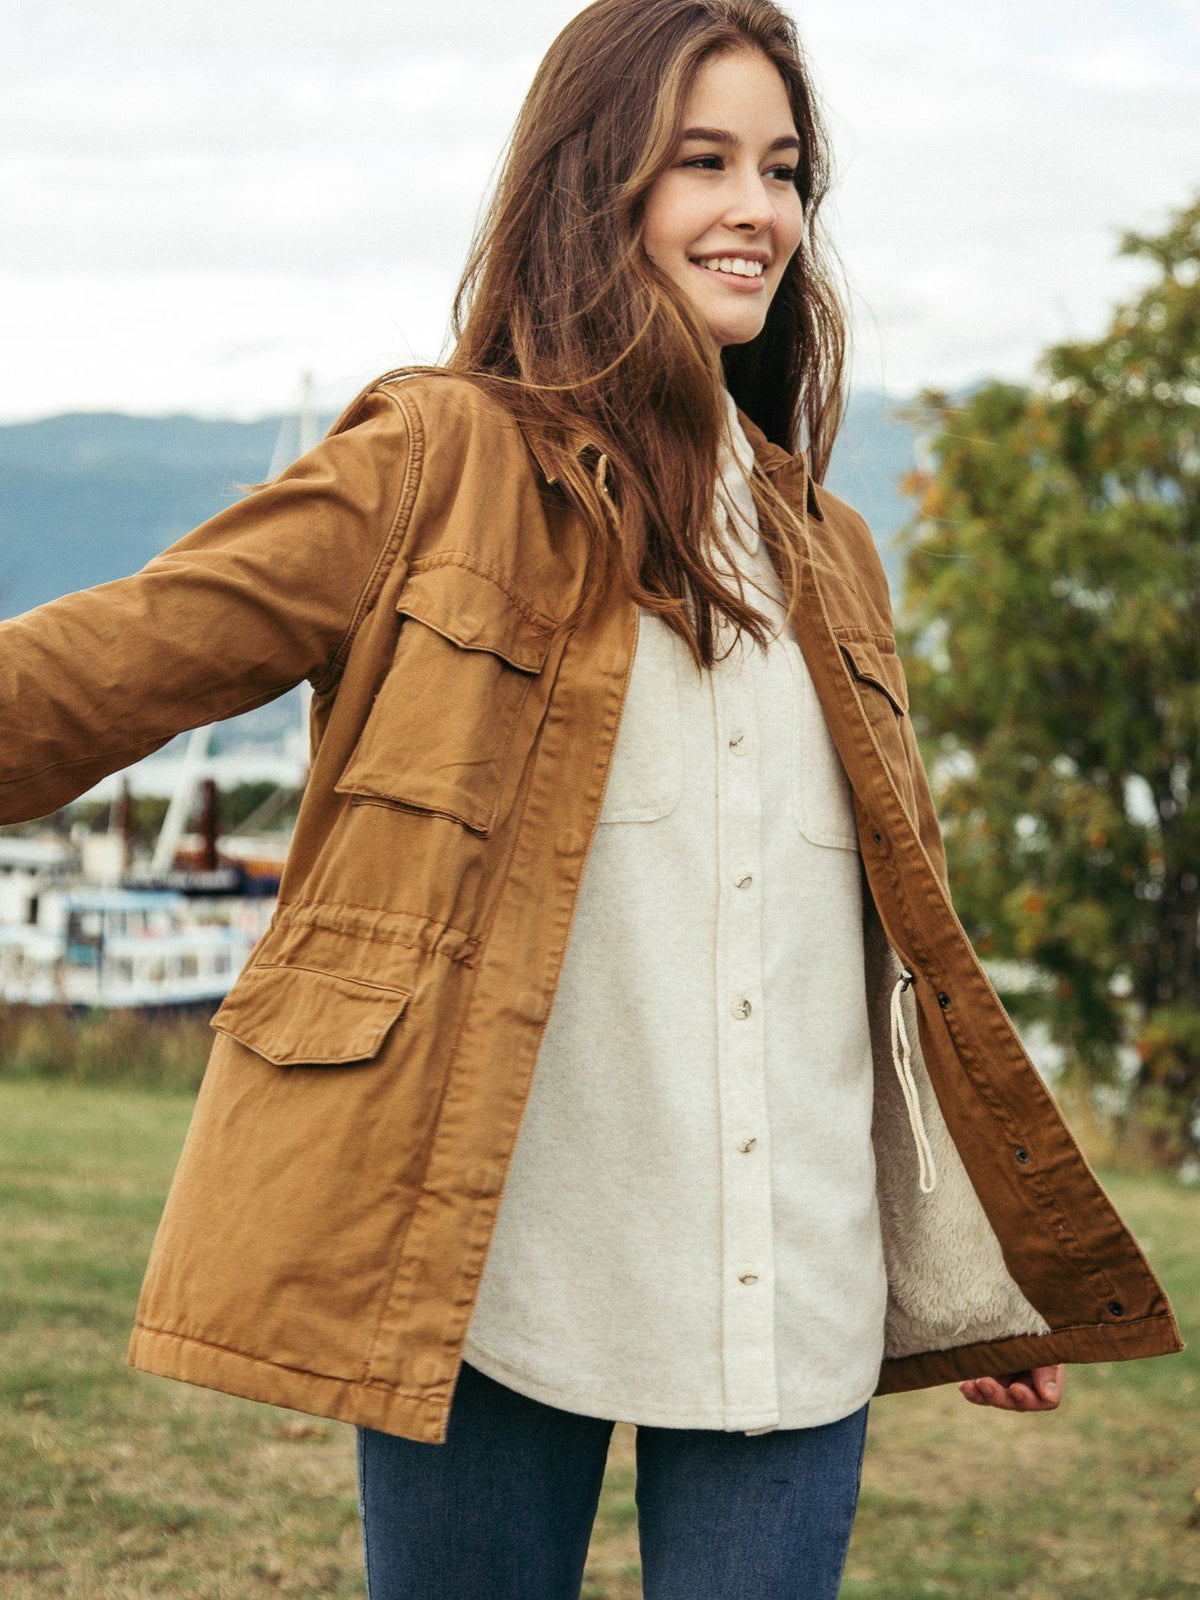 Drifting Slowly Jacket Jacket Thread & Supply Tawny S